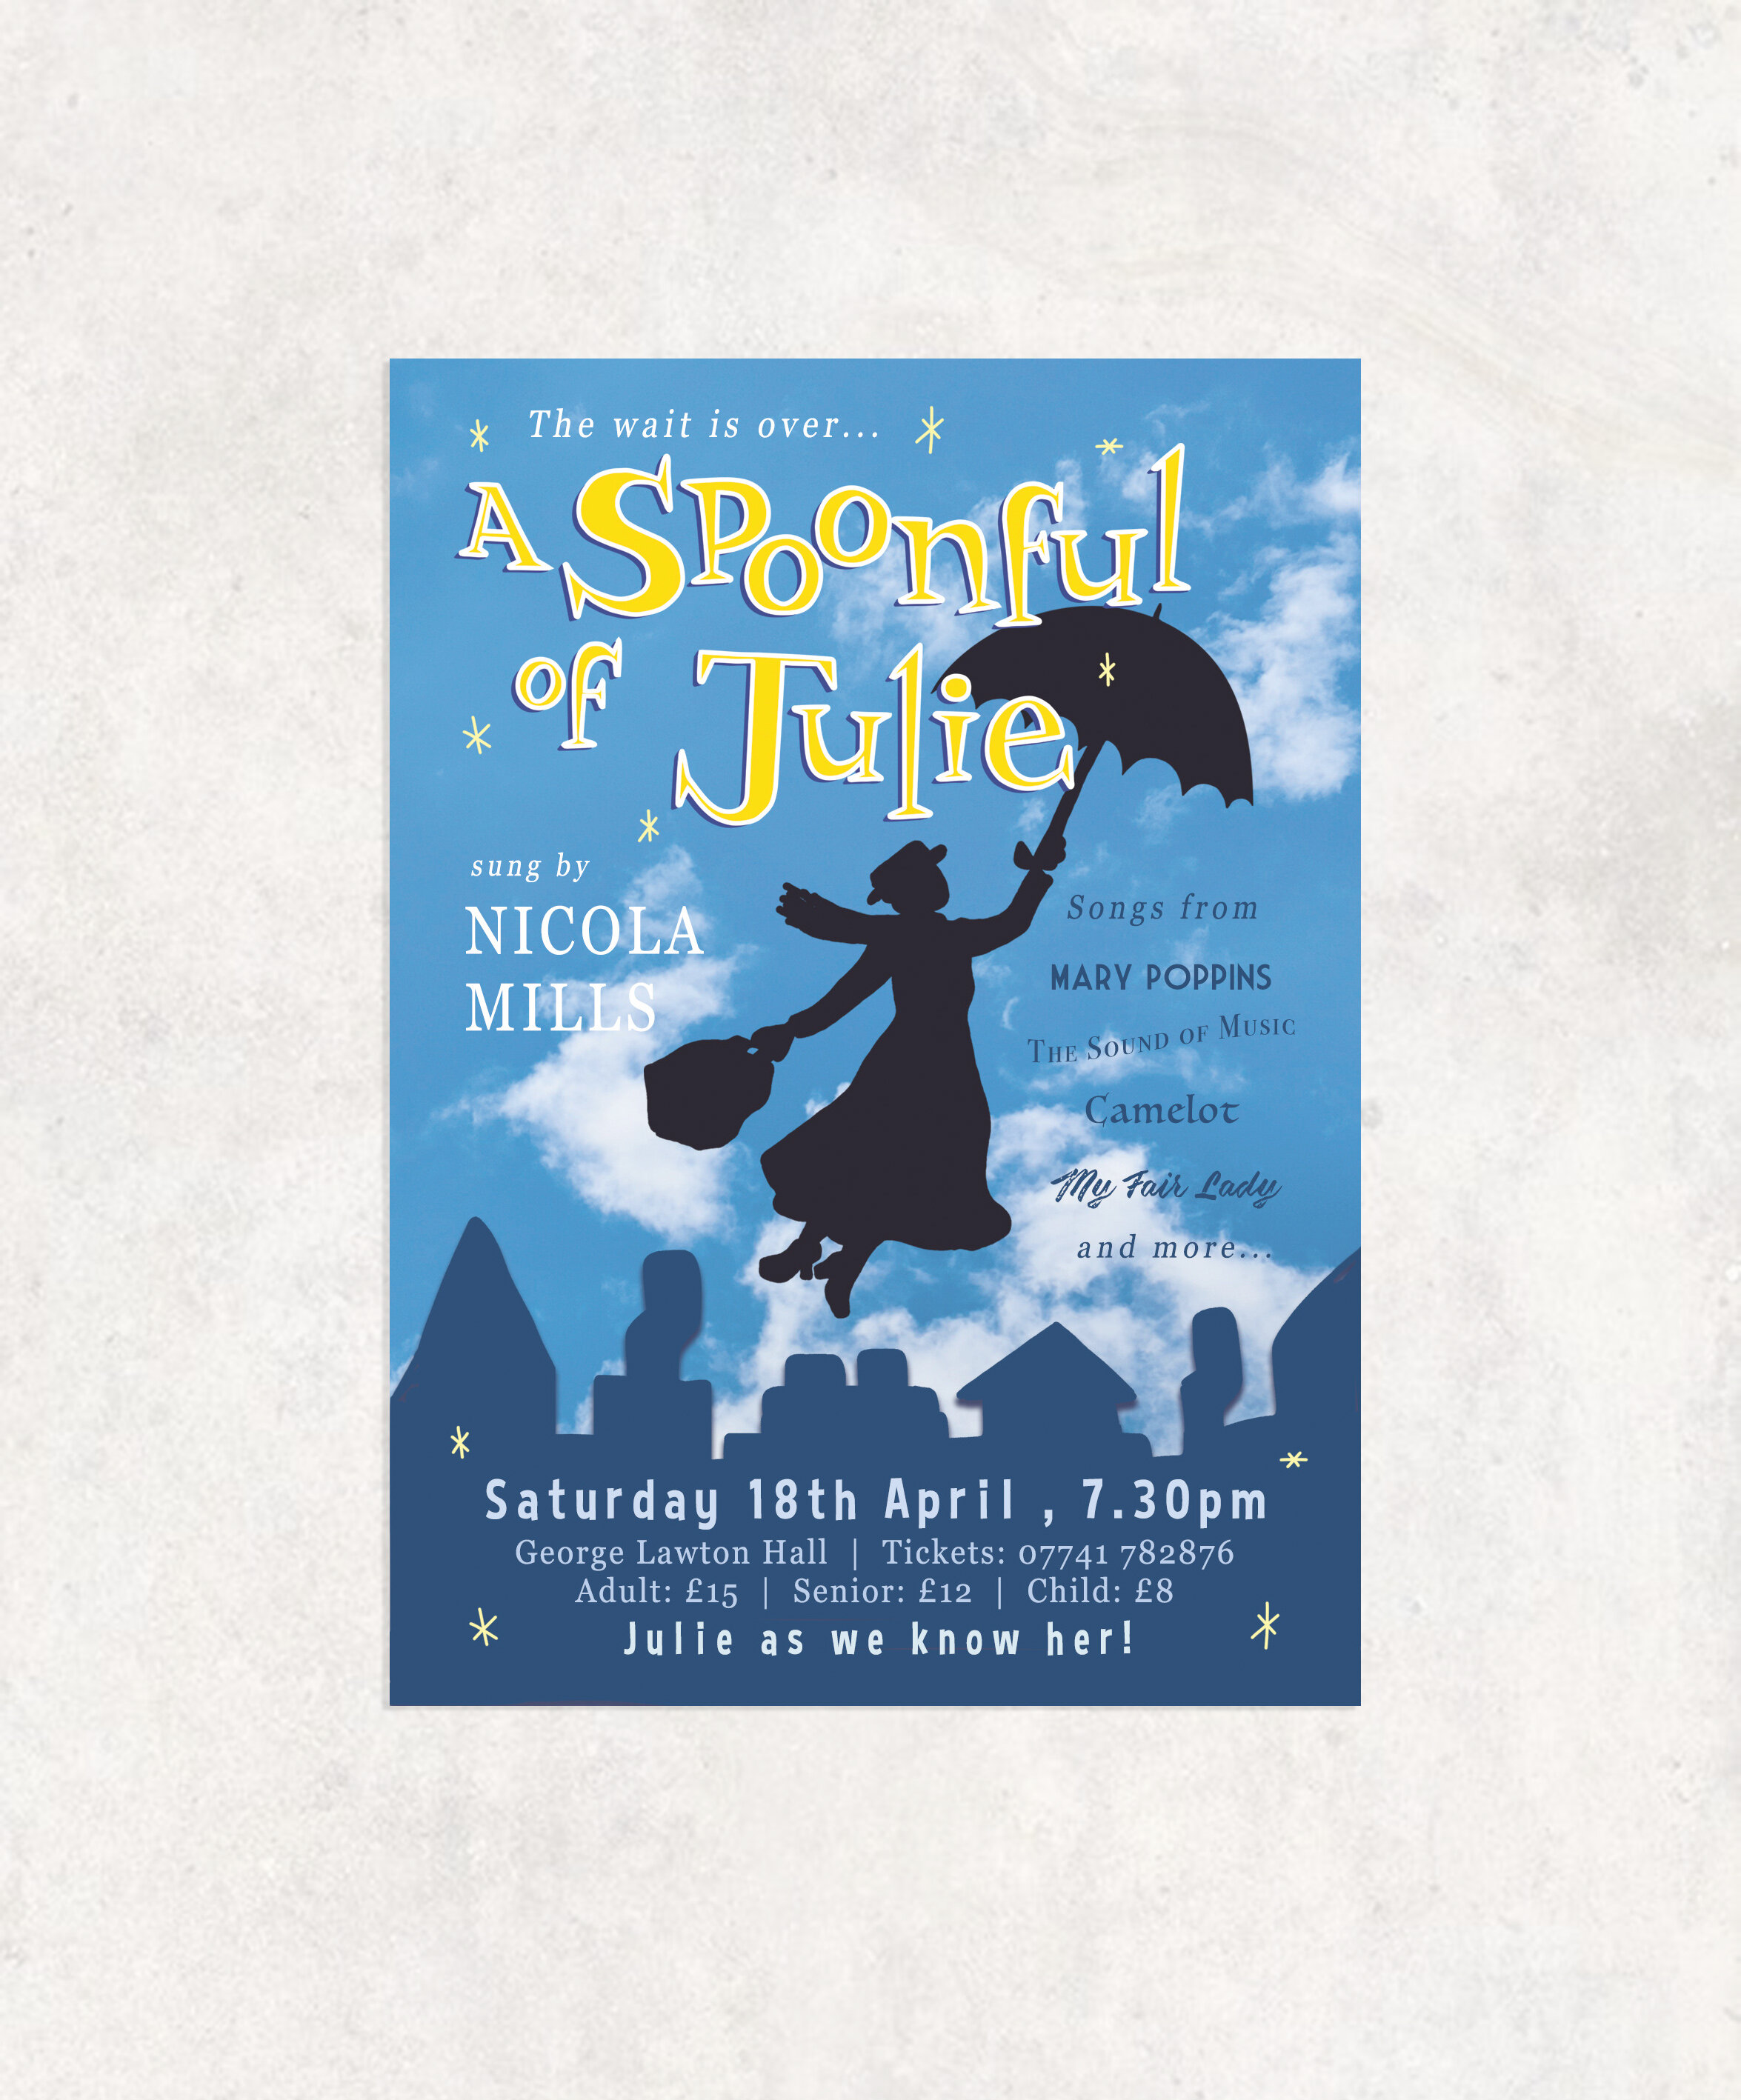 Poster and flyer design for Nicola Mills' show 'A Spoonful of Julie'